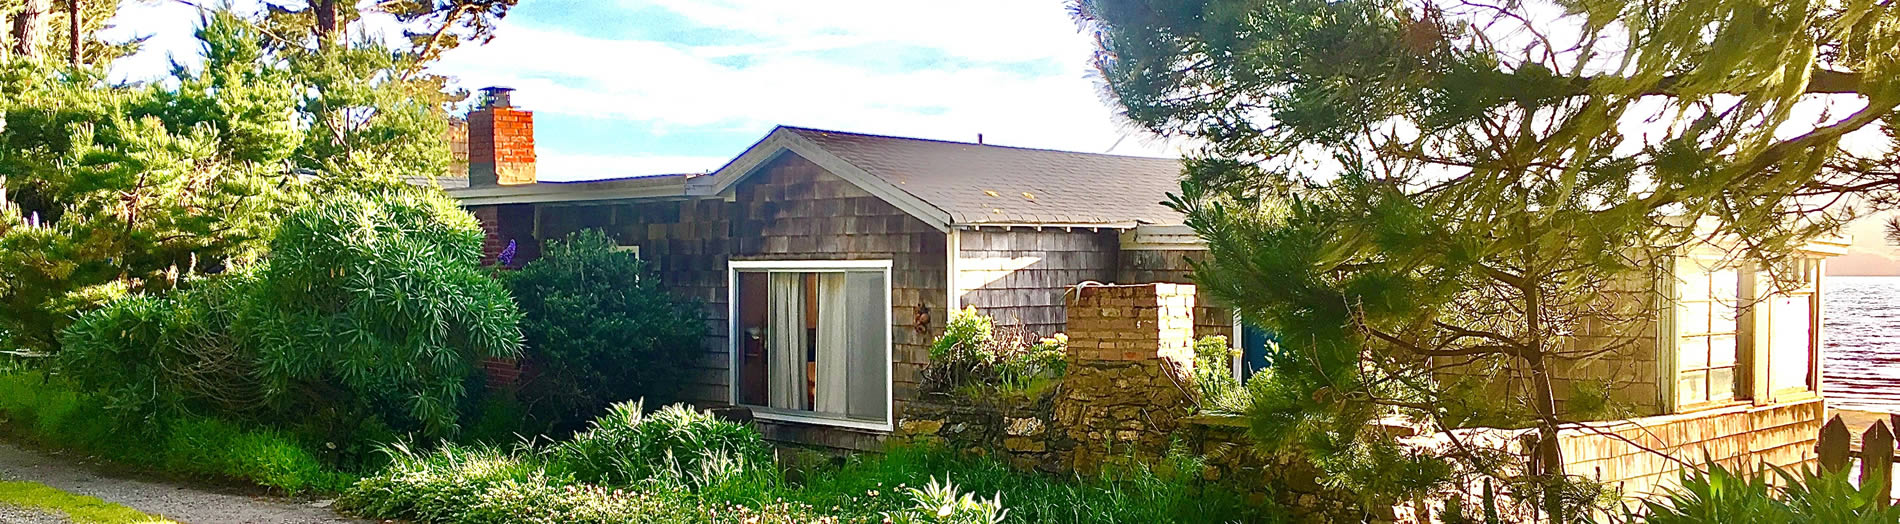 one of the high tide cottages & farm tomales bay